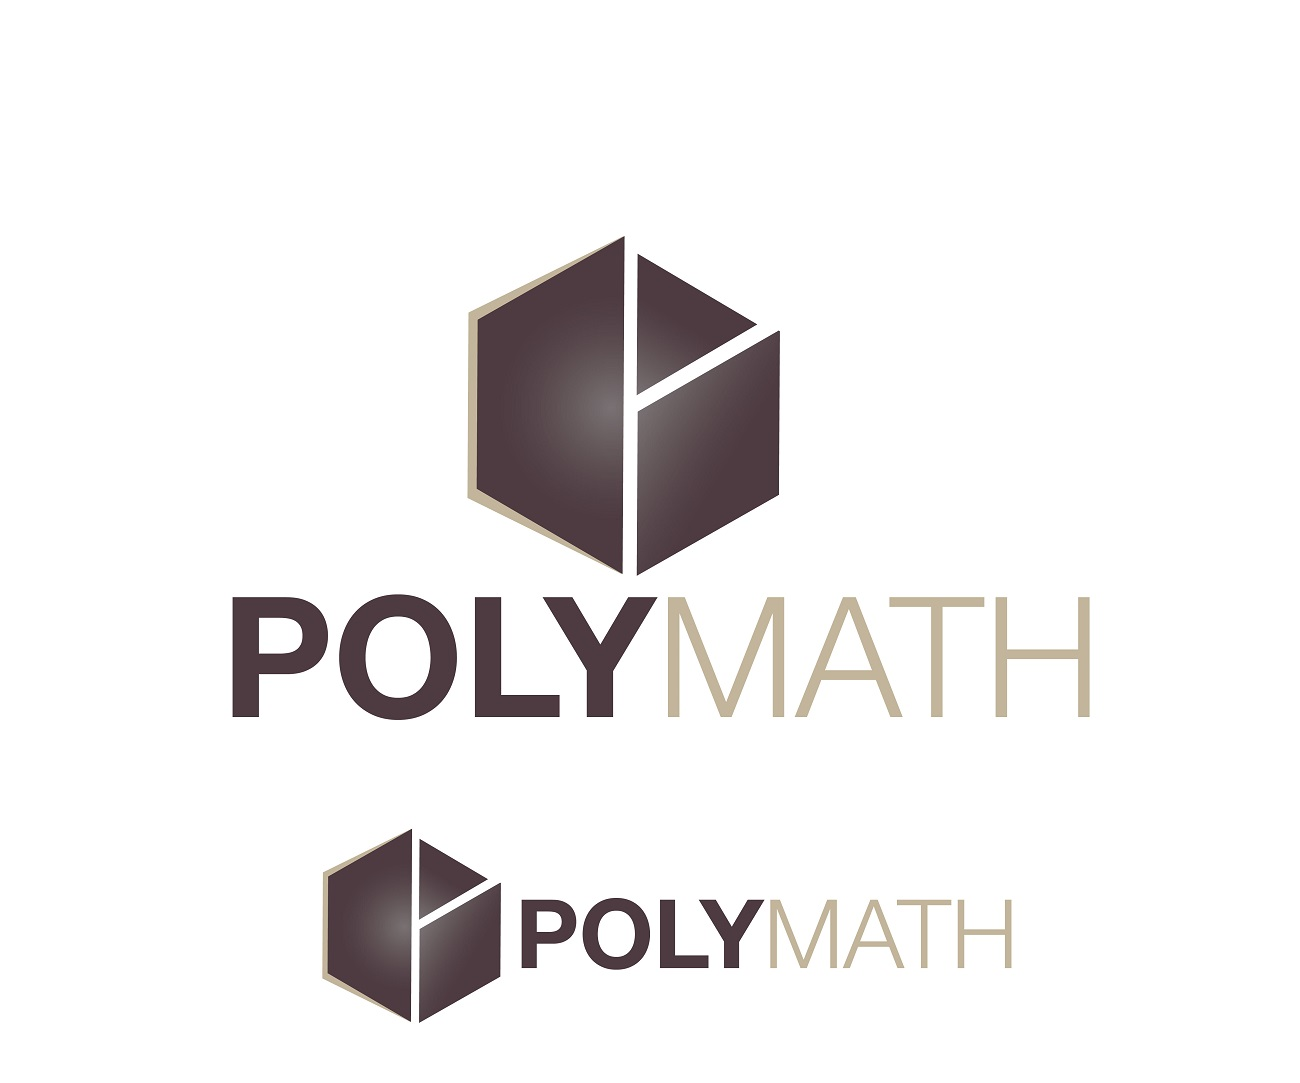 Logo Design by jhunzkie24 - Entry No. 42 in the Logo Design Contest Imaginative Logo Design for Polymath.